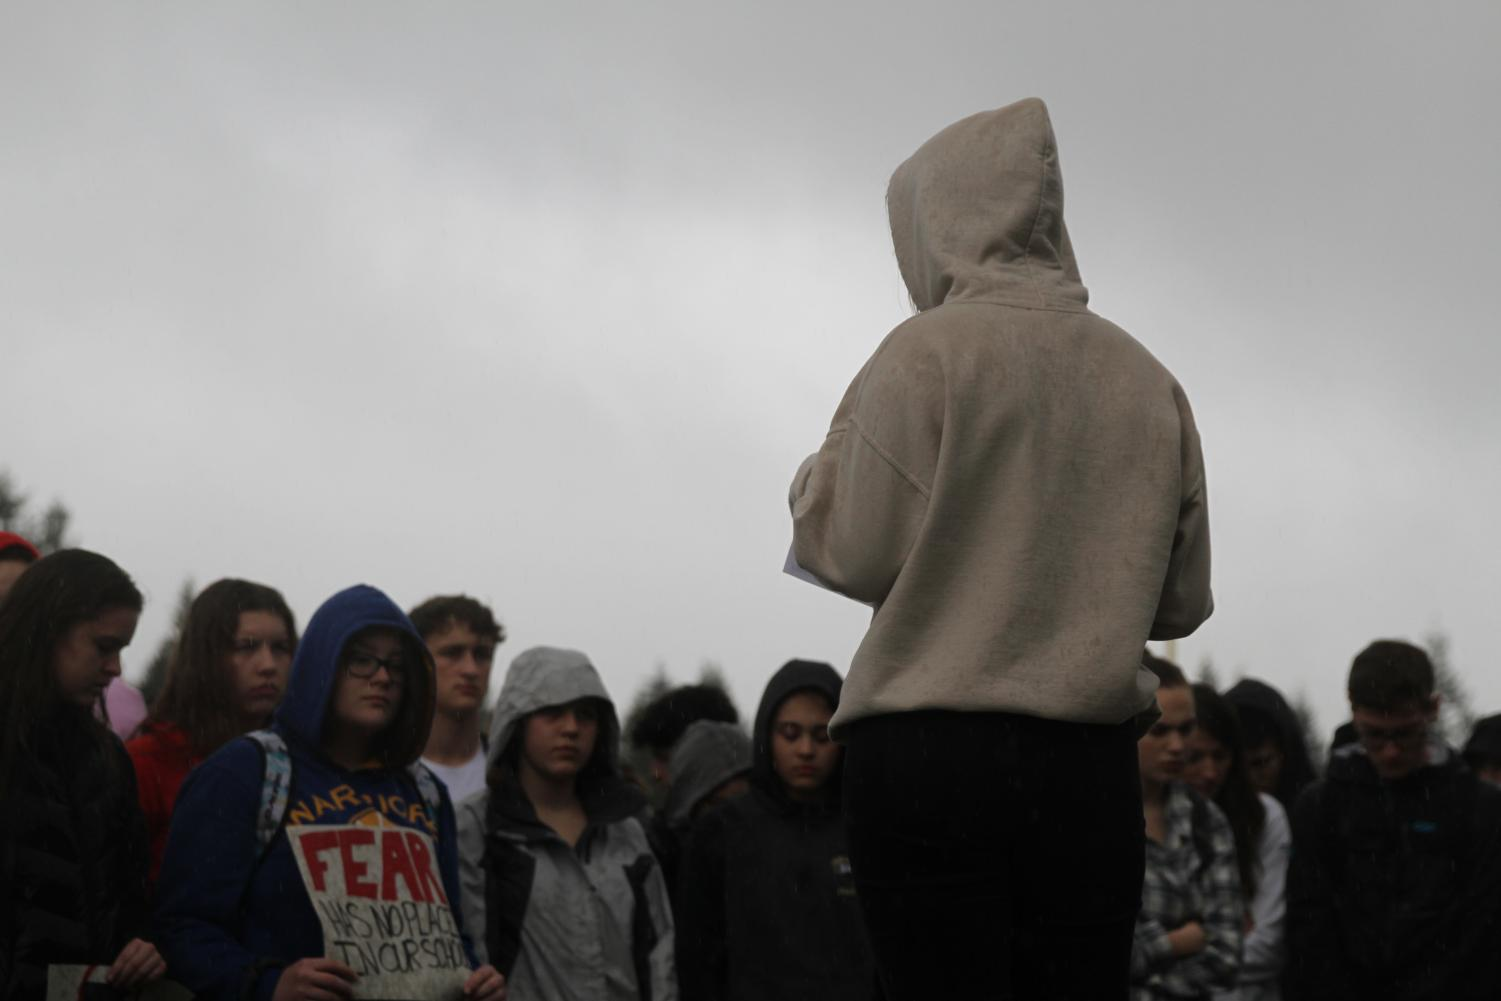 In March of 2018, students gather around in protest of the senseless violence